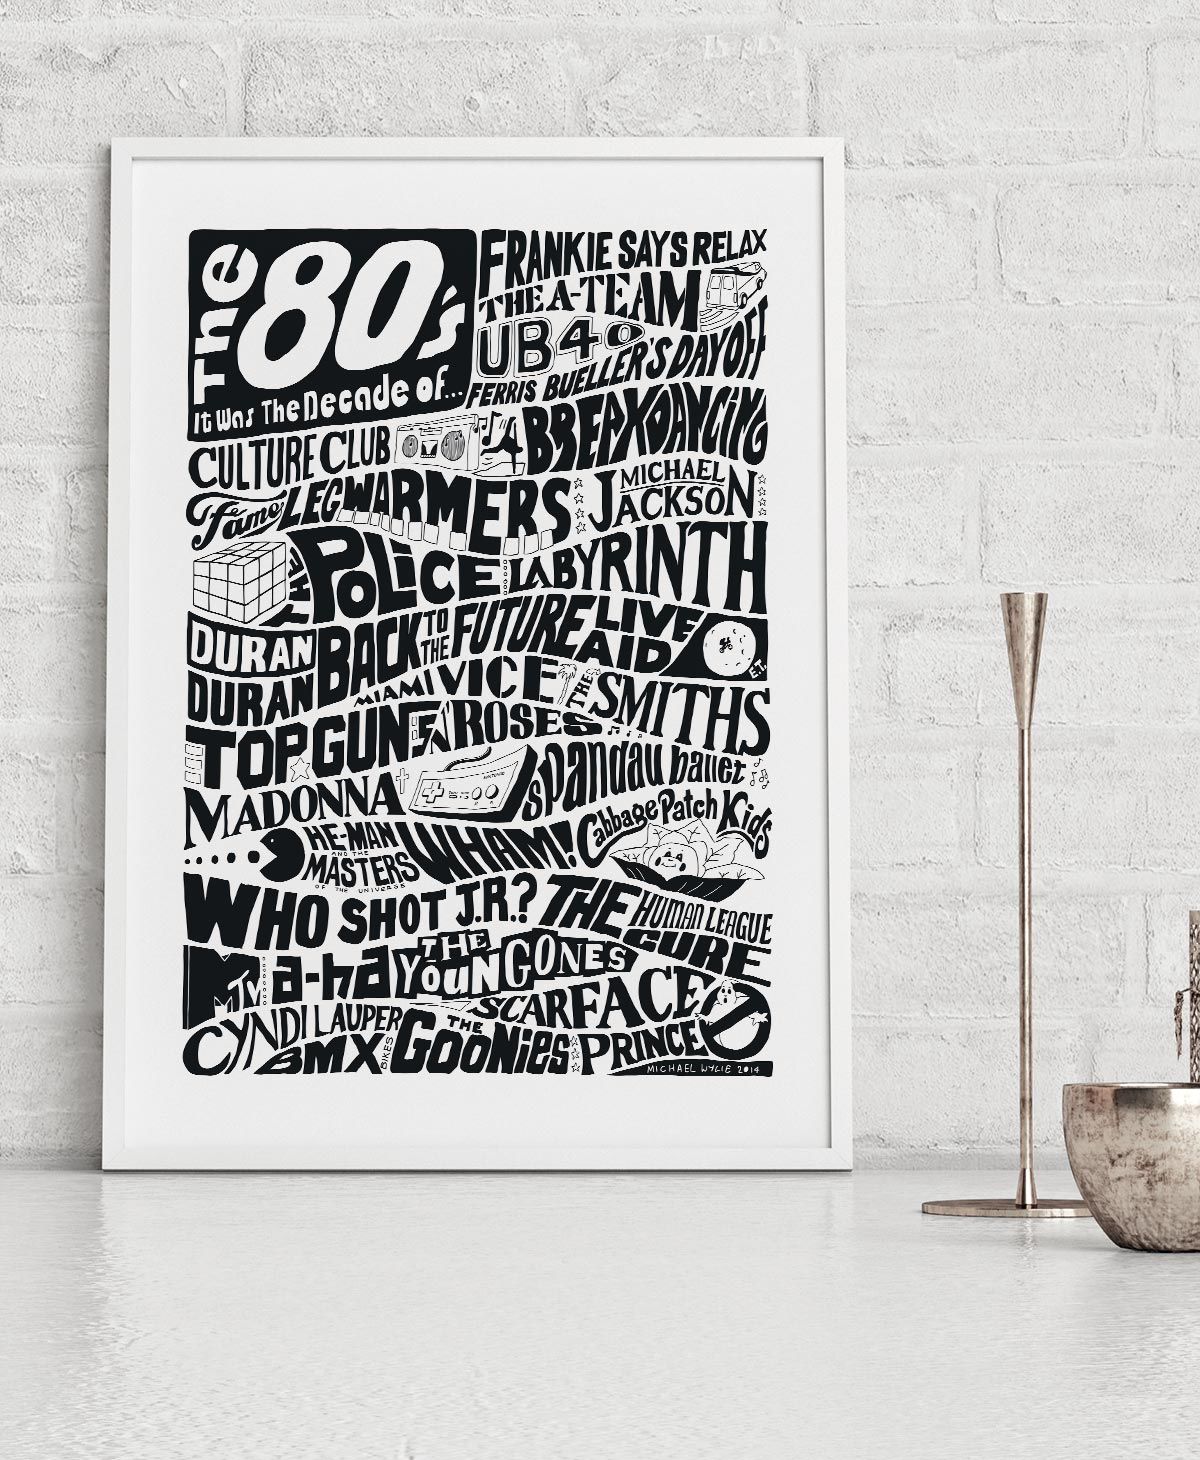 Hand-drawn 1980s Pop Culture prints by Sketchbook Design. One of the range of decade prints, also available as decades birthday card.